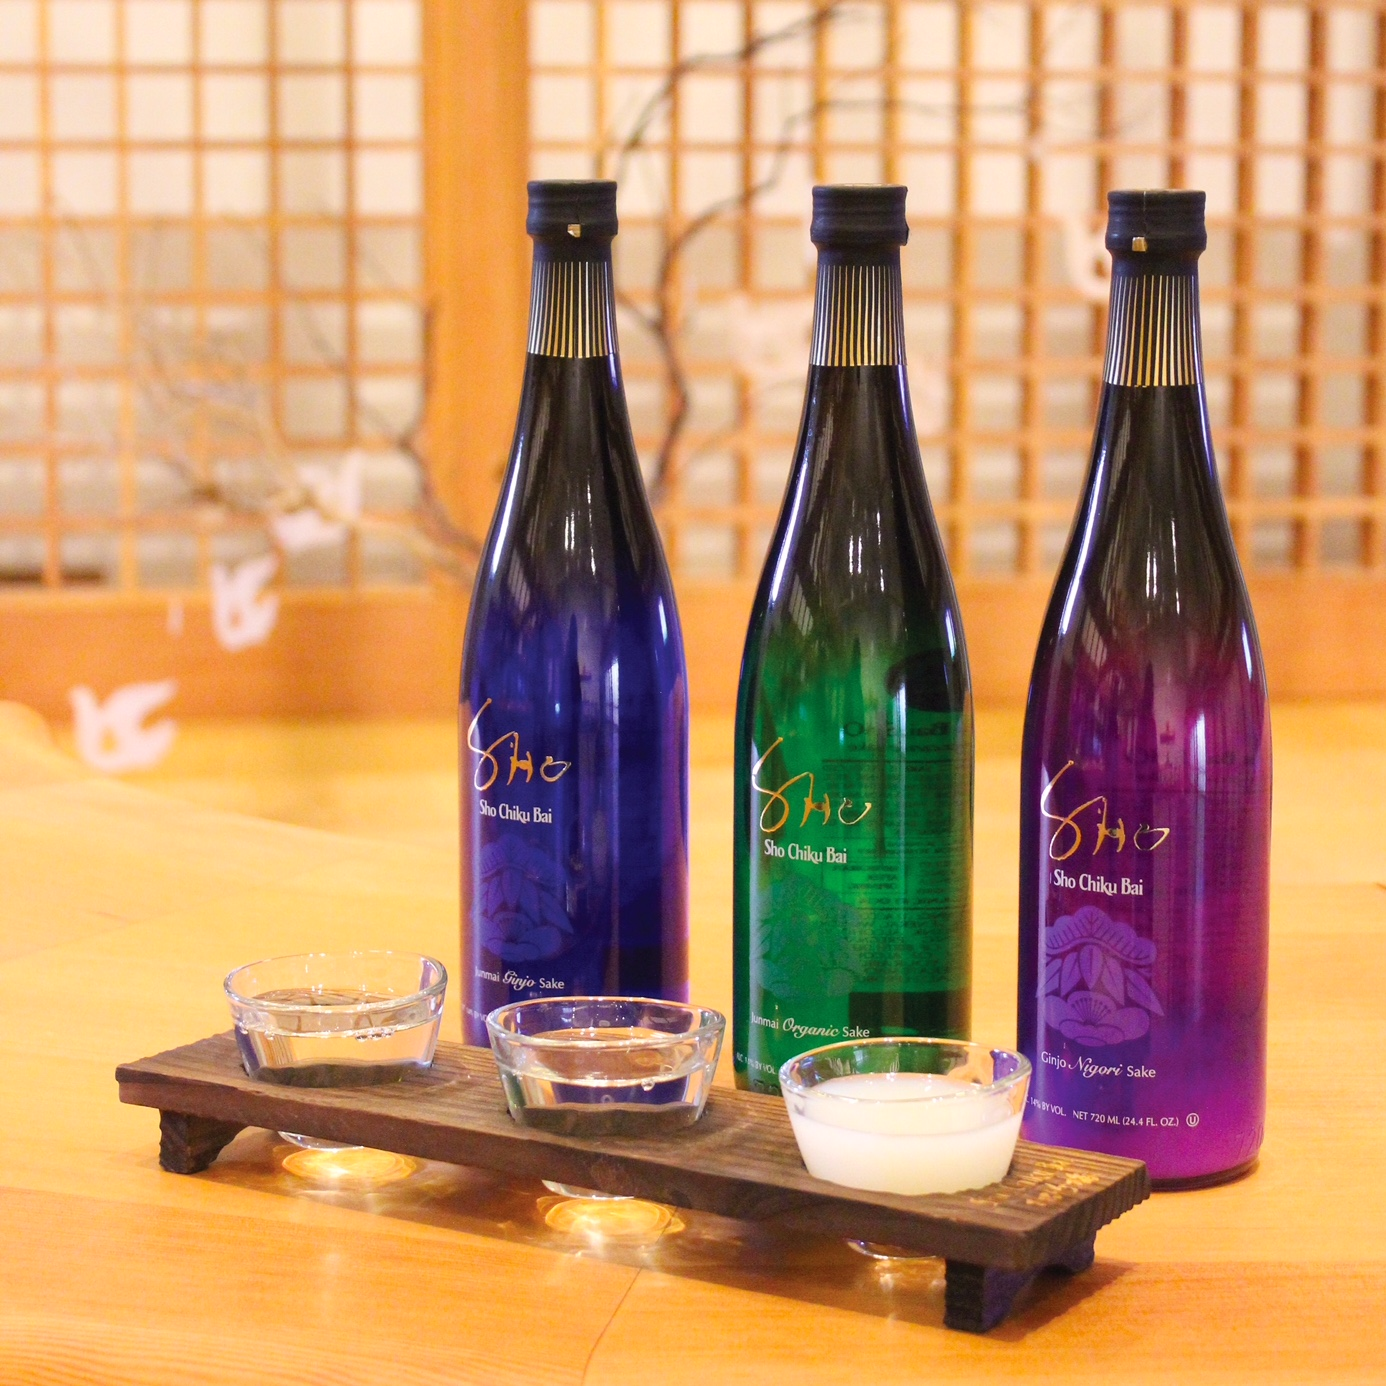 """SHO CHIKU BAI SHO Tasting Flight Set"" > 3 types of SHO and original 3 glass flight set MAIN"